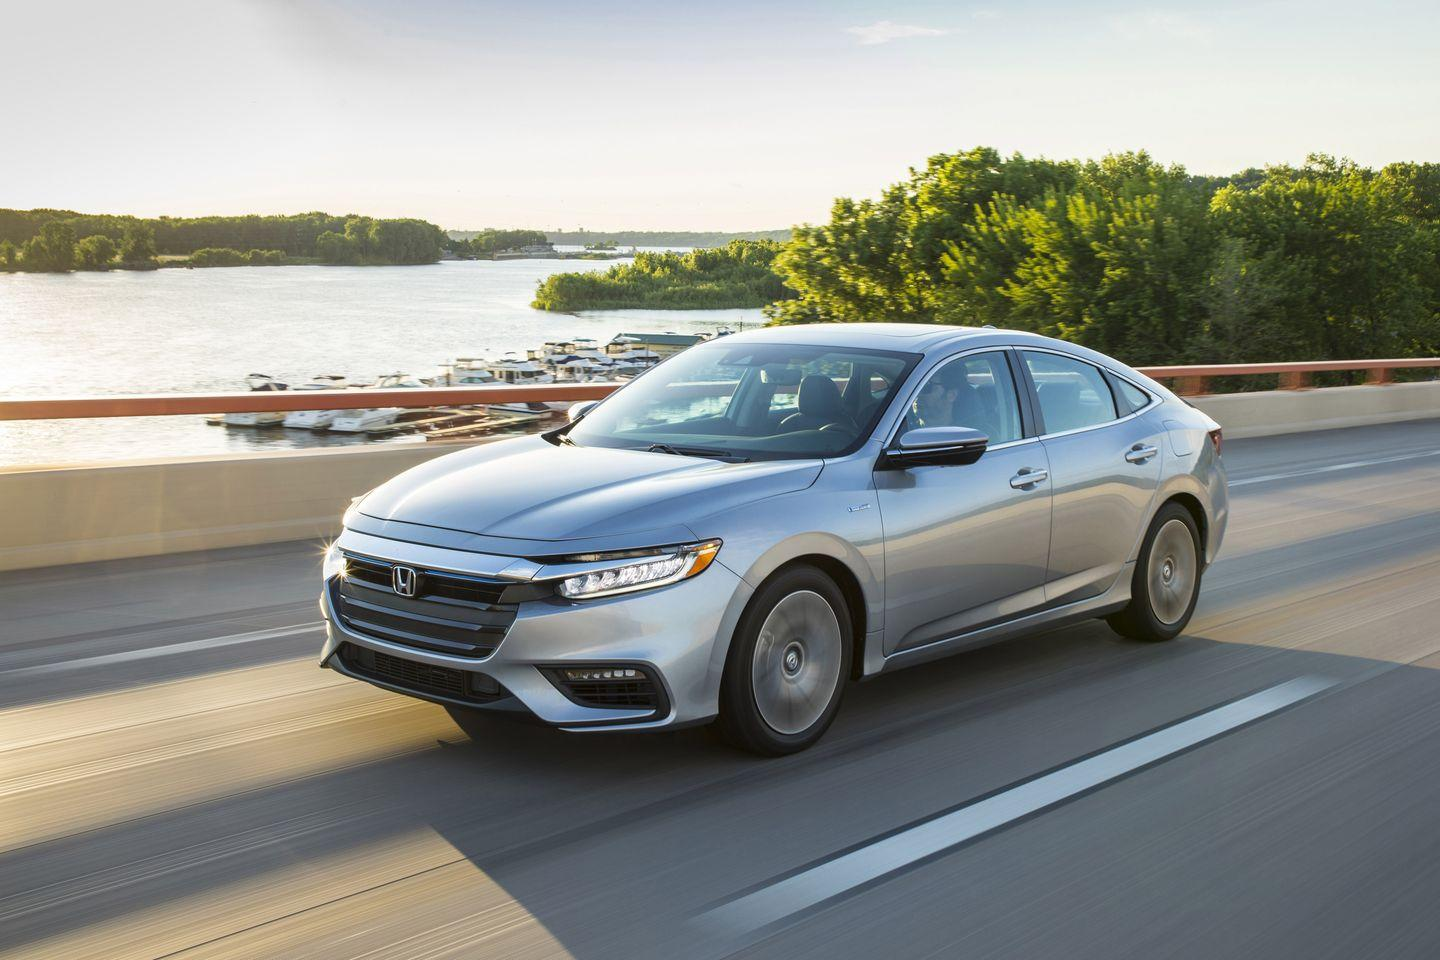 "<p>While some hybrids announce their noble planet-saving intentions with wild exterior styling, the <a href=""https://www.caranddriver.com/honda/insight-2020"" rel=""nofollow noopener"" target=""_blank"" data-ylk=""slk:2020 Insight"" class=""link rapid-noclick-resp"">2020 Insight </a>disguises its hybrid powertrain with a conventionally styled exterior. For the most part, the hybrid <a href=""https://www.caranddriver.com/honda"" rel=""nofollow noopener"" target=""_blank"" data-ylk=""slk:Honda"" class=""link rapid-noclick-resp"">Honda</a> accomplishes its mission as a fuel-efficient family sedan with clever technology and a comfortable interior. Spend a little more time in one, however, as we have with <a href=""https://www.caranddriver.com/reviews/a26287347/2019-honda-insight-reliability-maintenance/"" rel=""nofollow noopener"" target=""_blank"" data-ylk=""slk:our 2019 long-termer"" class=""link rapid-noclick-resp"">our 2019 long-termer</a>, and you start to see the lack of polish and refinement you might miss in a short test drive.</p><p><a class=""link rapid-noclick-resp"" href=""https://www.caranddriver.com/honda/insight-2020"" rel=""nofollow noopener"" target=""_blank"" data-ylk=""slk:Review, Pricing, and Specs"">Review, Pricing, and Specs</a></p>"